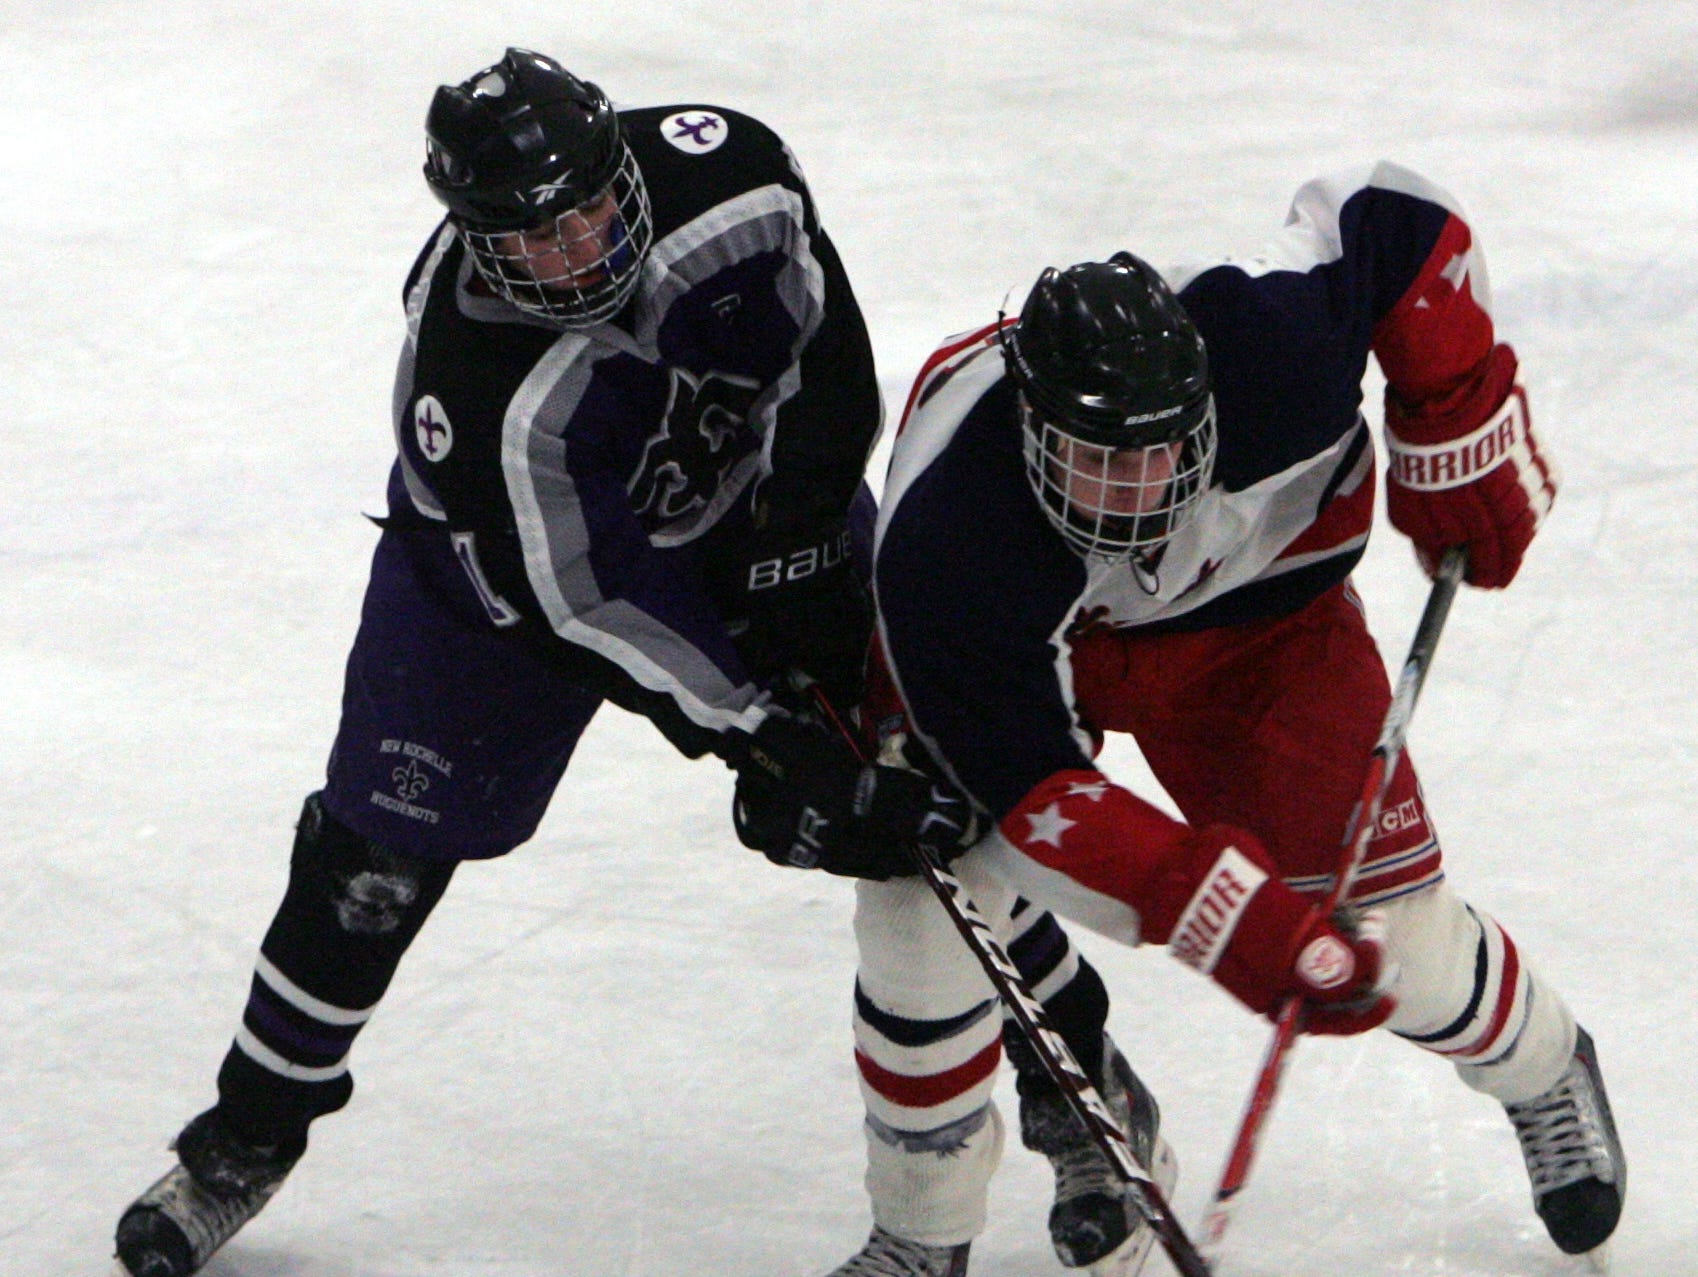 Former New Rochelle standout Richie Prunesti went toe to toe with New Jersey Devils defenseman Steve Santini (right) when they were in high school. They also played on the same New York Applecore club team. The clashed in January of 2011 at Brewster Ice Arena.